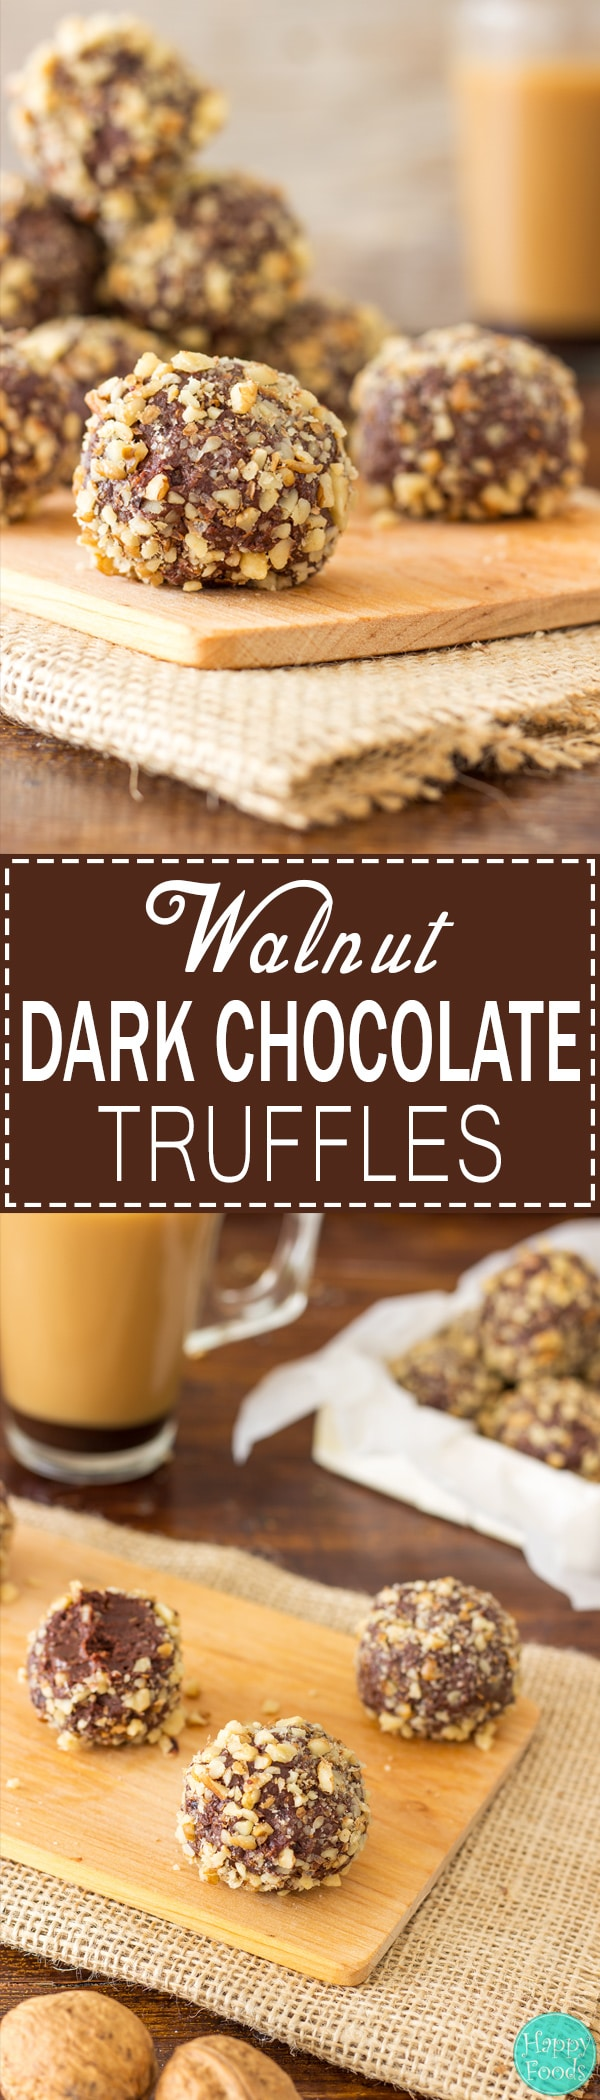 Walnut Dark Chocolate Truffles - Super easy no bake dessert recipe! Best sweet treats. Only 5 ingredients - Dark Chocolate, Caramel (Dulce de Leche), Walnuts, Butter and Dried Fruit